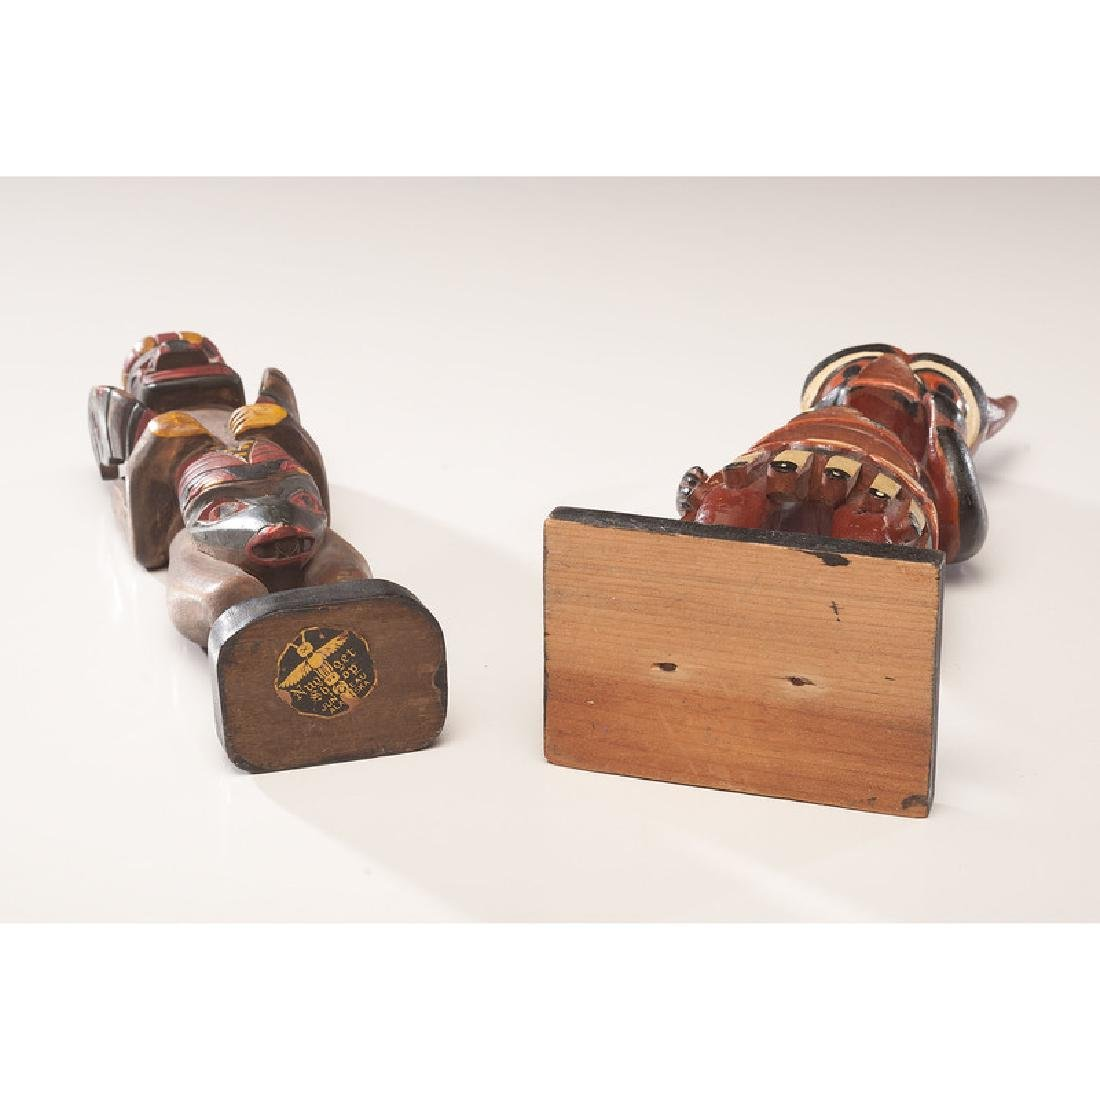 Northwest Coast Painted Wood Carvings with Nugget Shop - 4